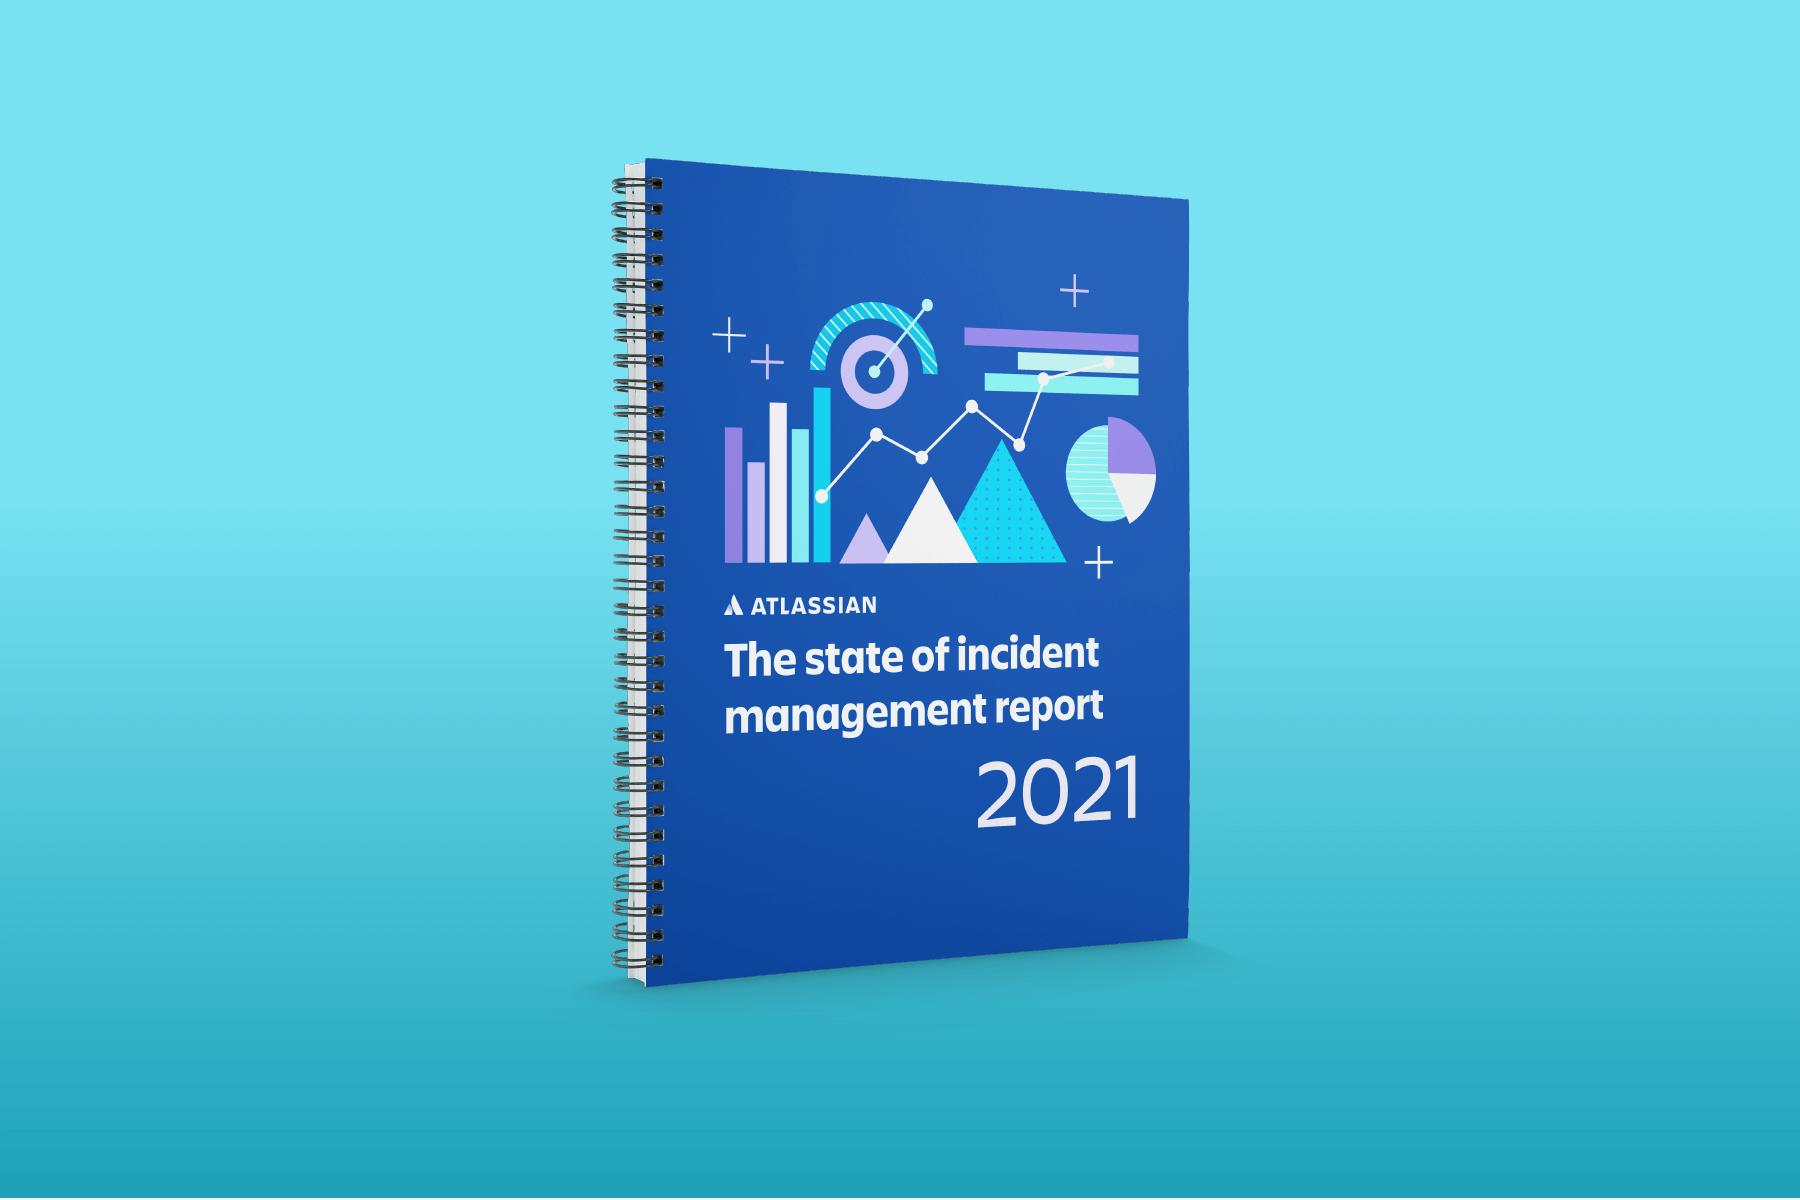 The State of Incident Management Report 2021 cover